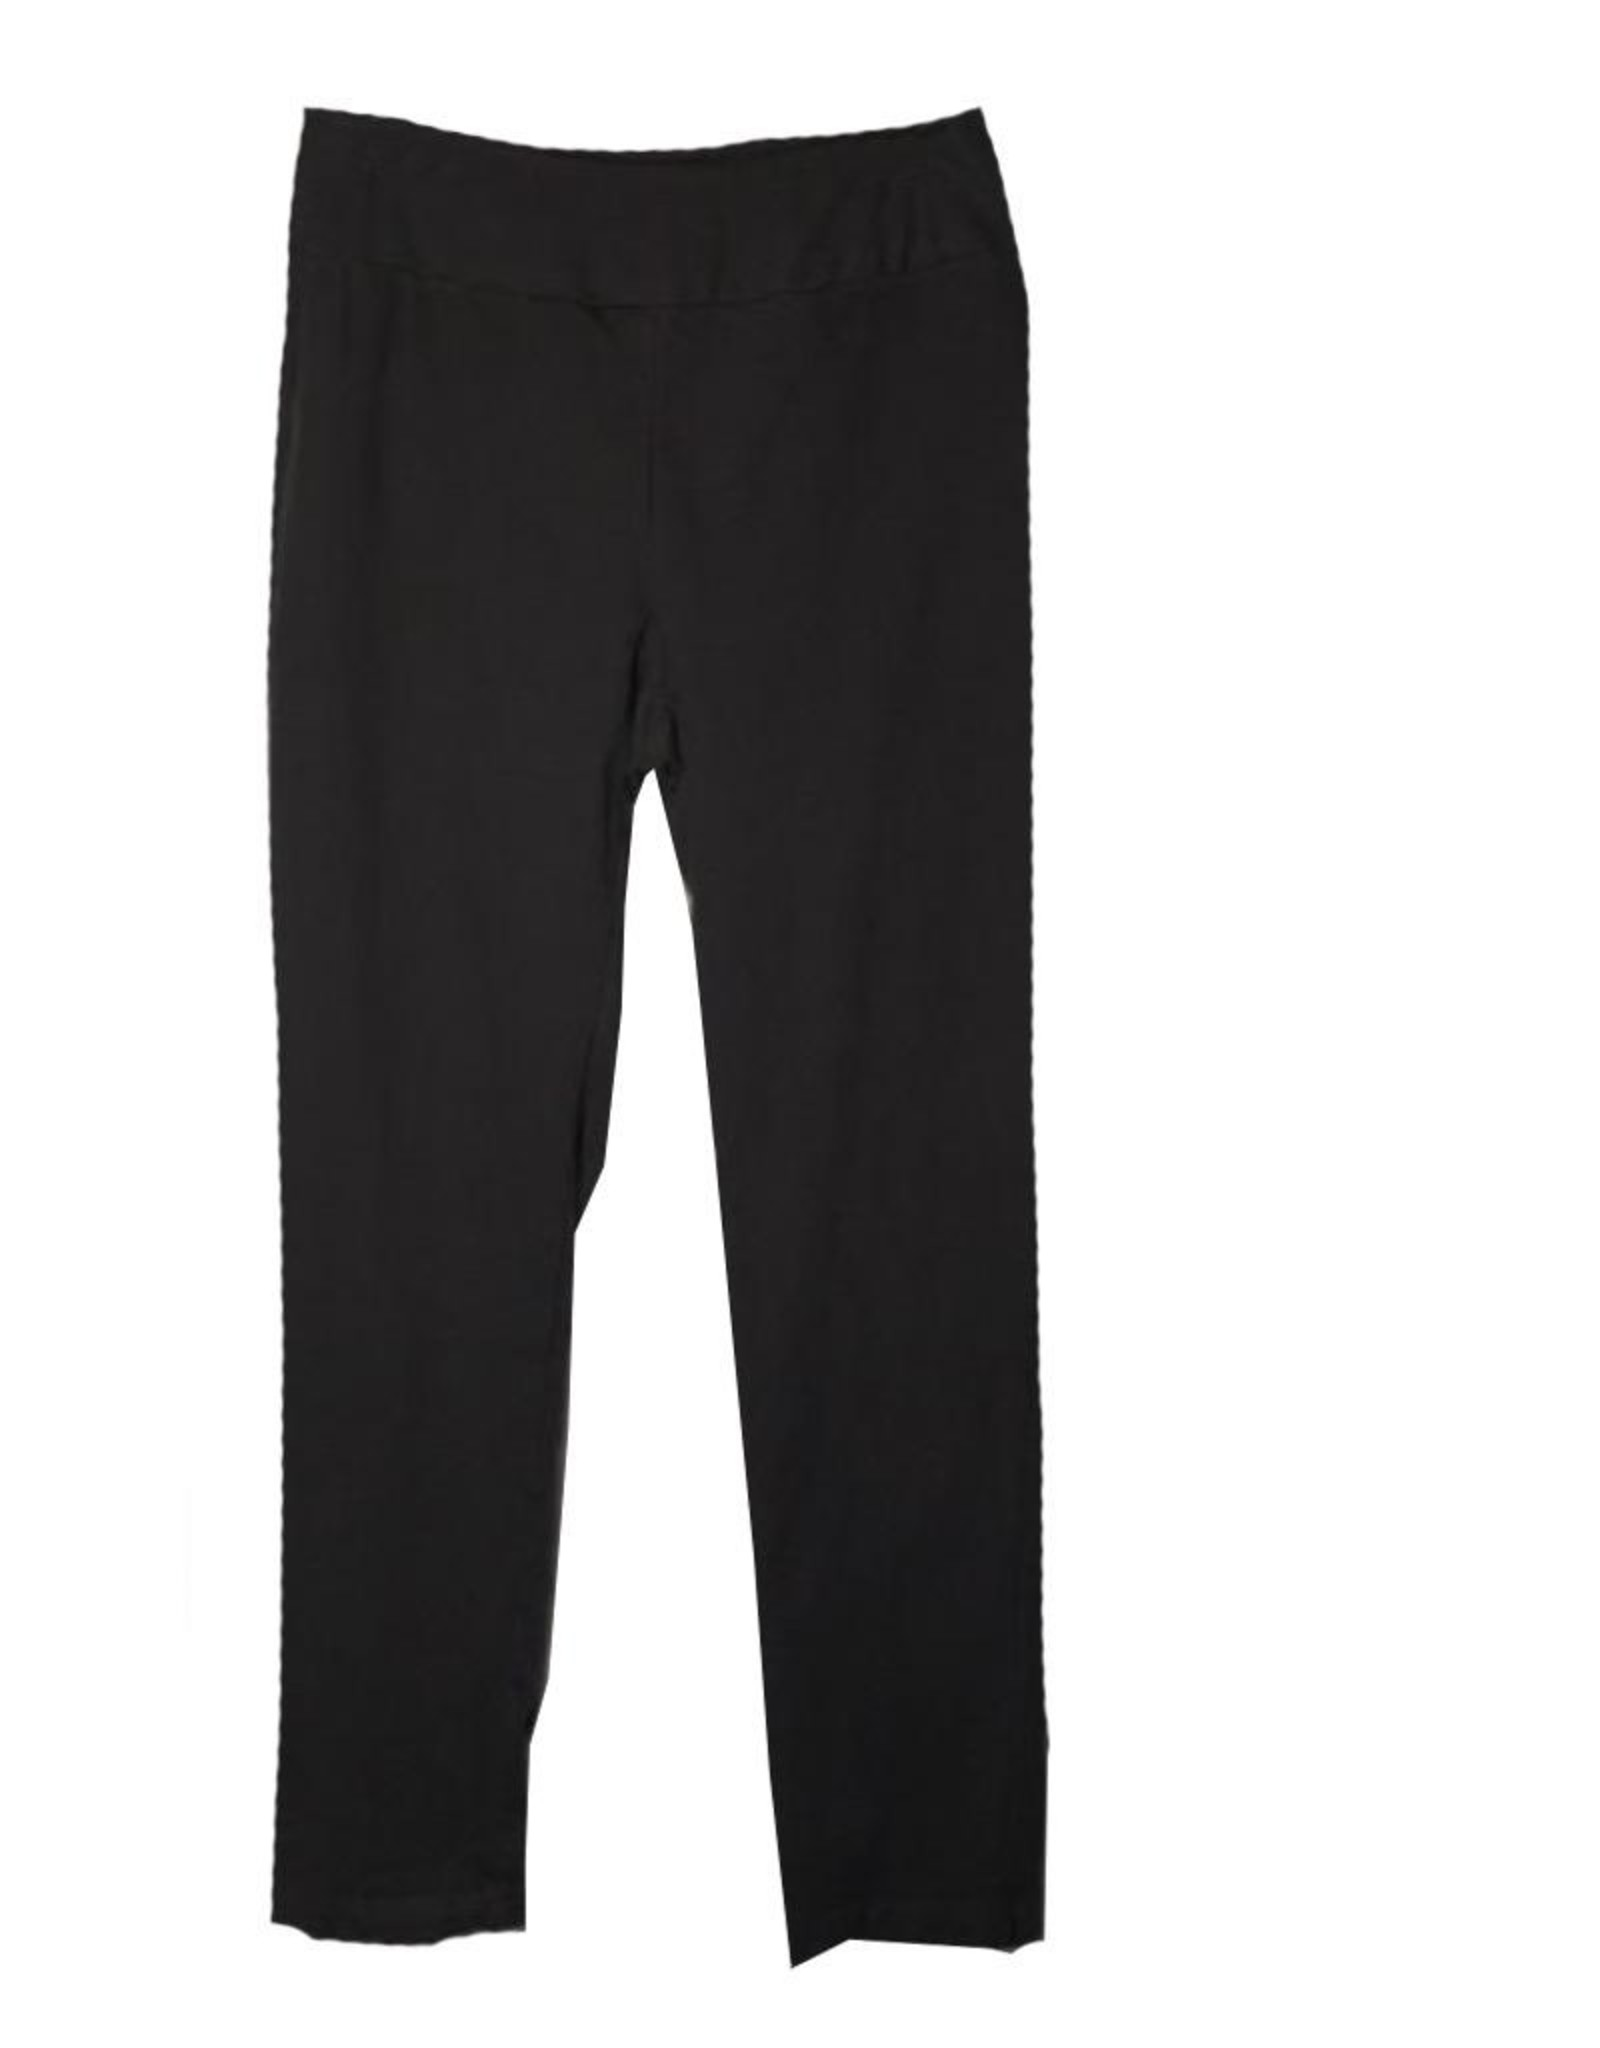 Cut Loose French Twill Slim Ankle Pant